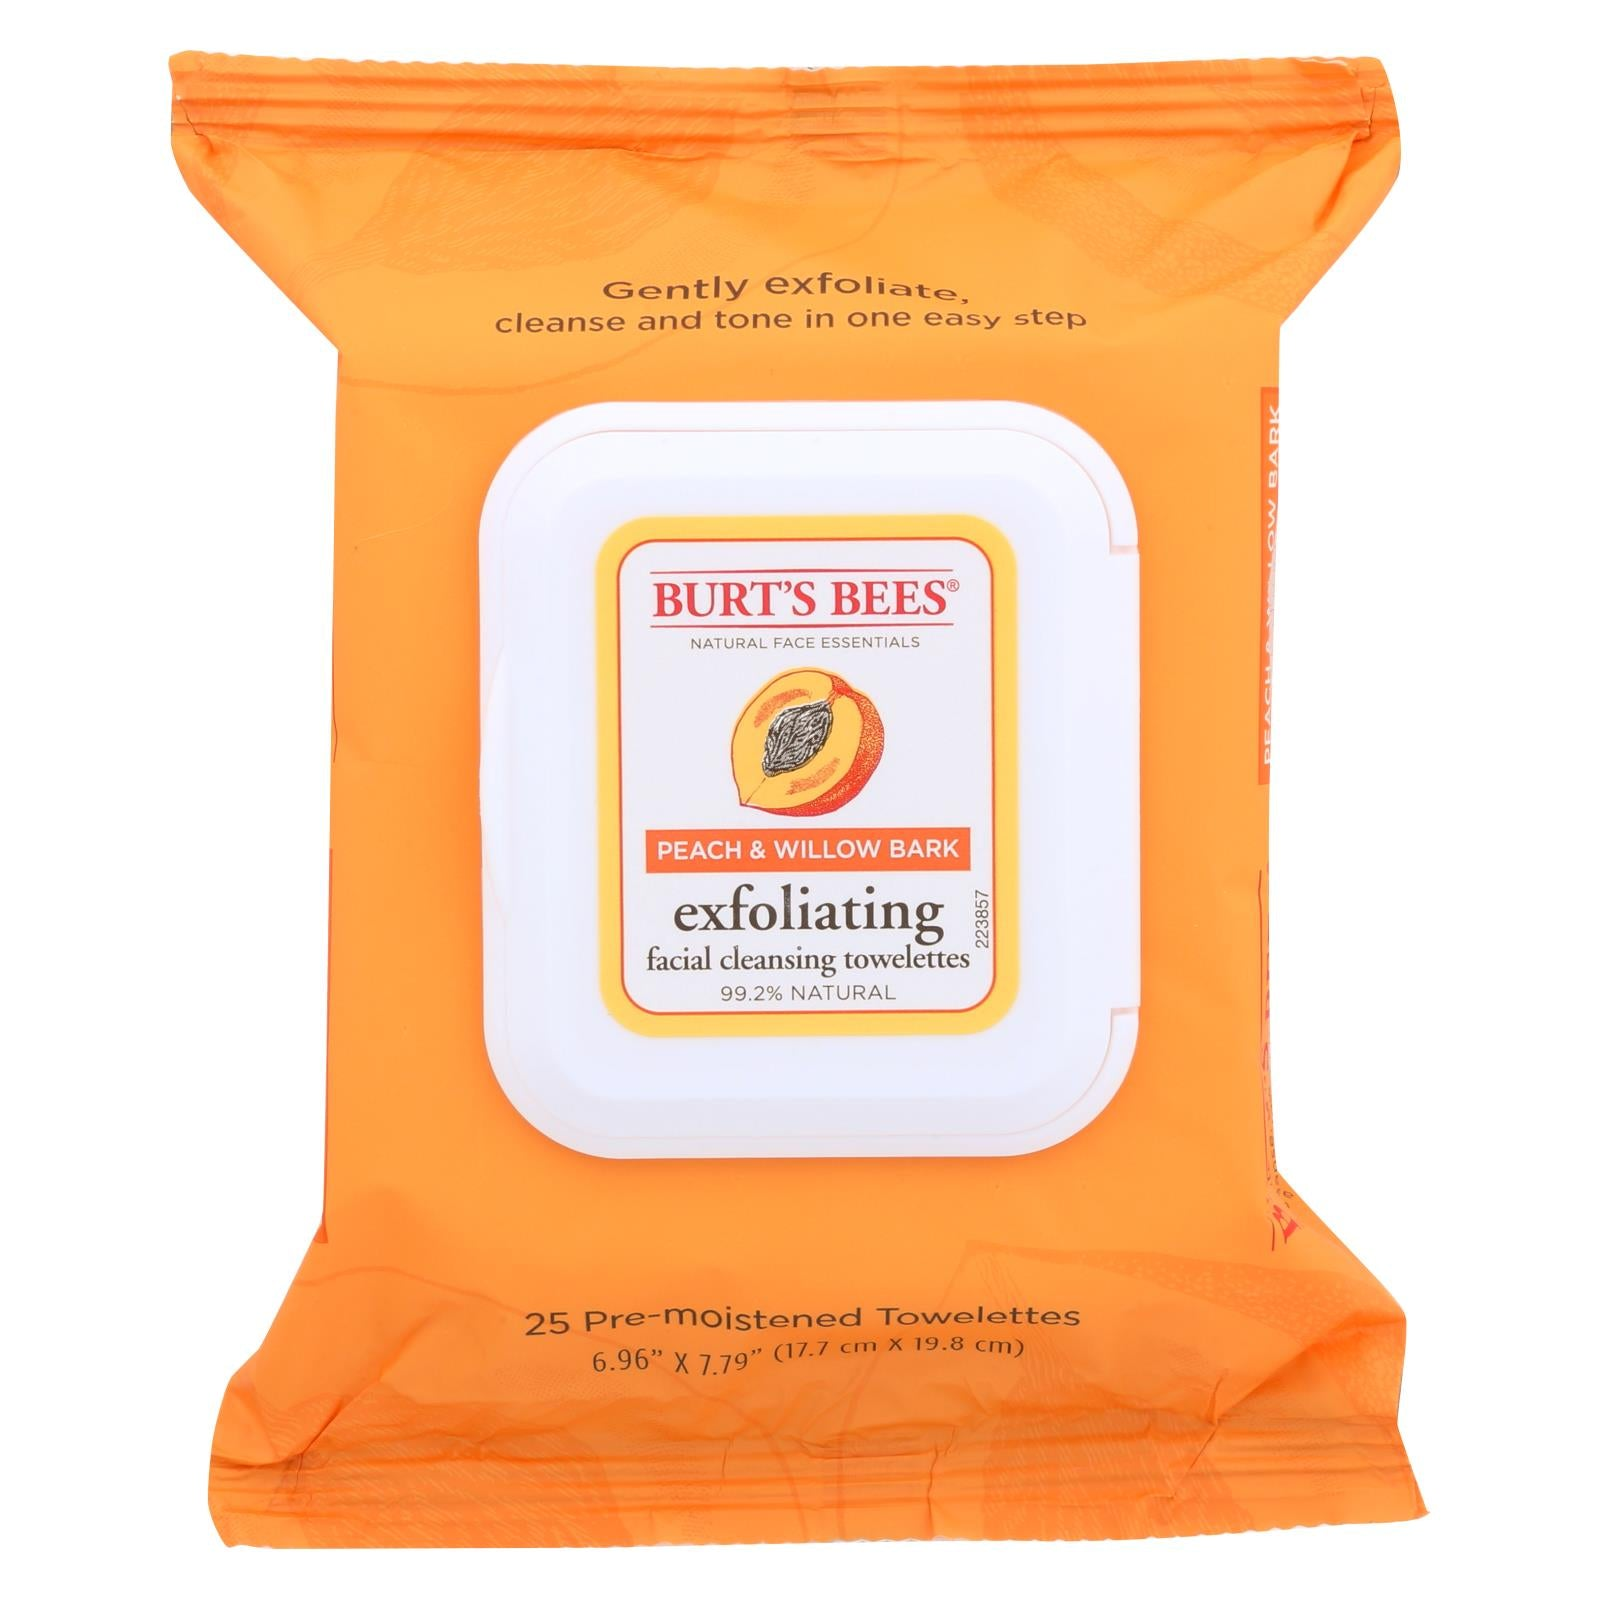 burts bees case Burt's bees, one of america's burt's bees: new system implementation & change management burt's bees the case for change.